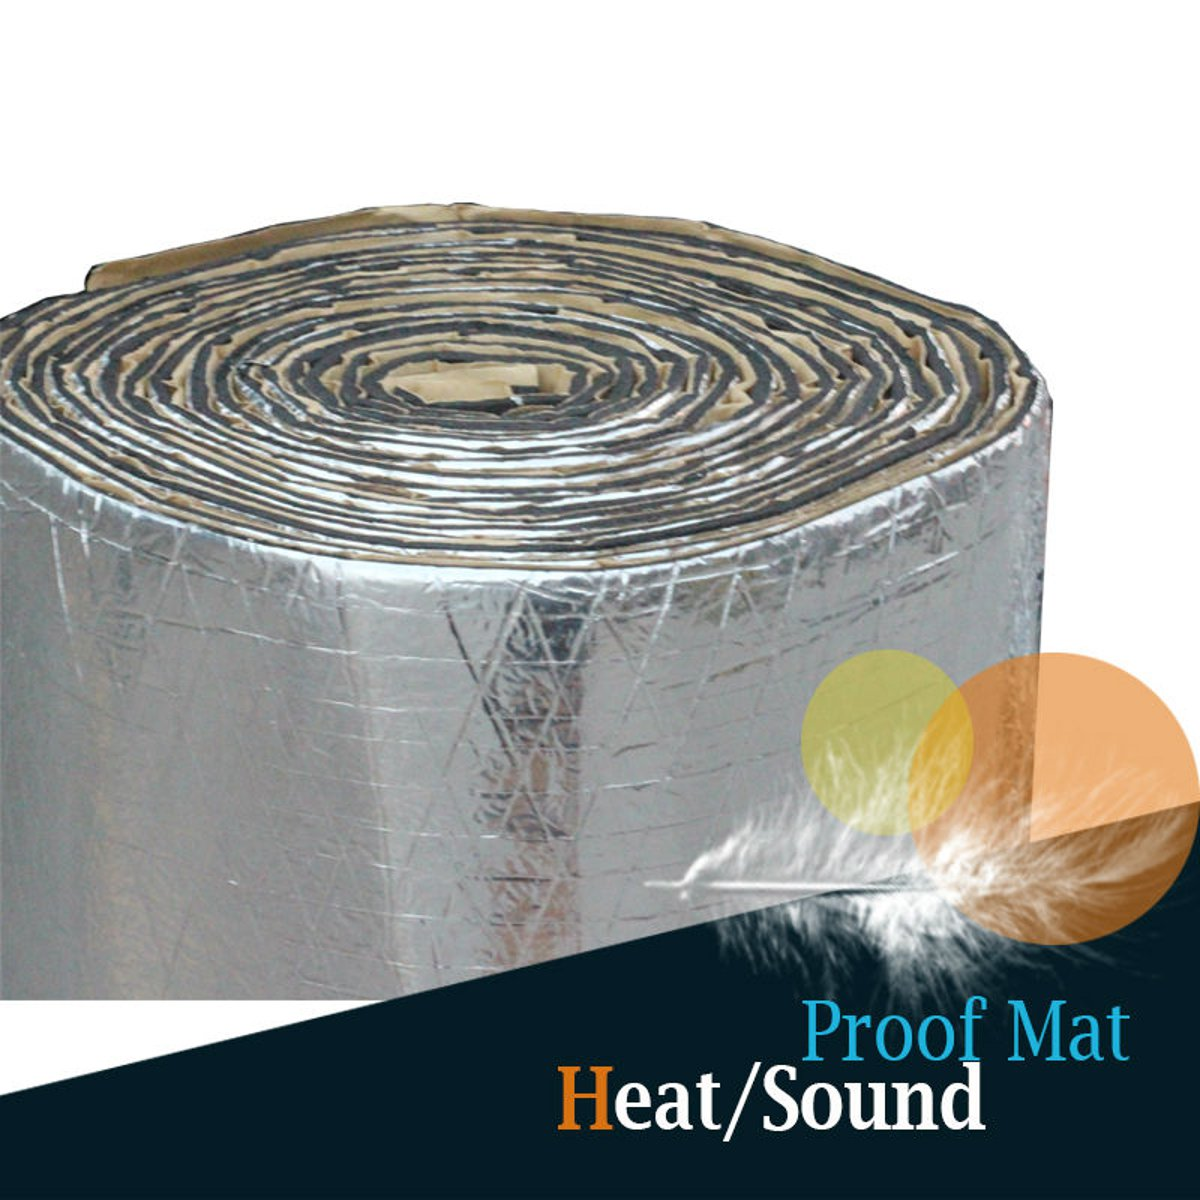 Sound And Heat Proofing Car Auto Deadener Sound Insulation Cotton Underlay Mat